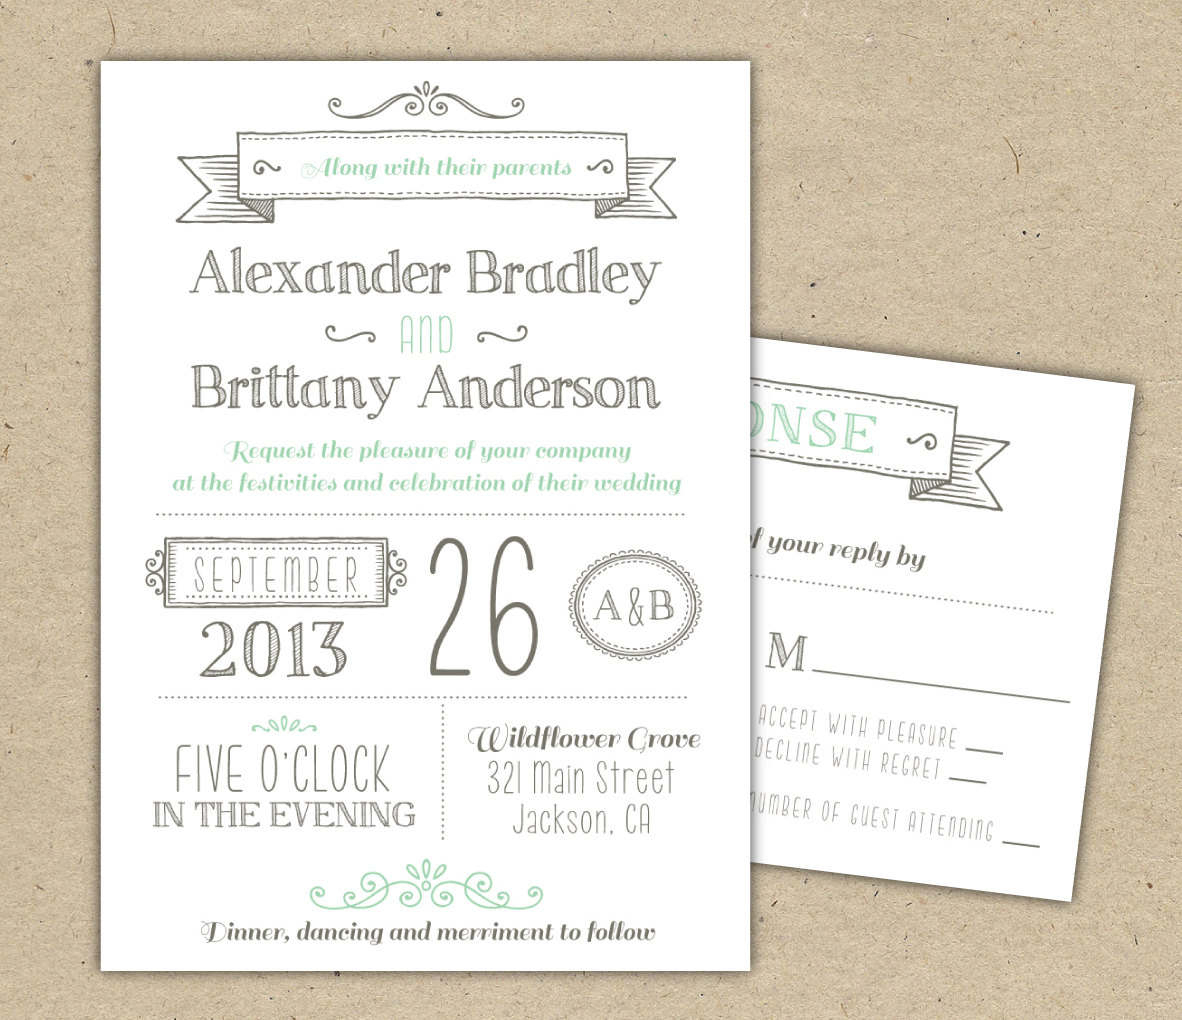 Wedding Invites Templates Free Printable Wedding Invitations - Free Printable Wedding Invitation Templates